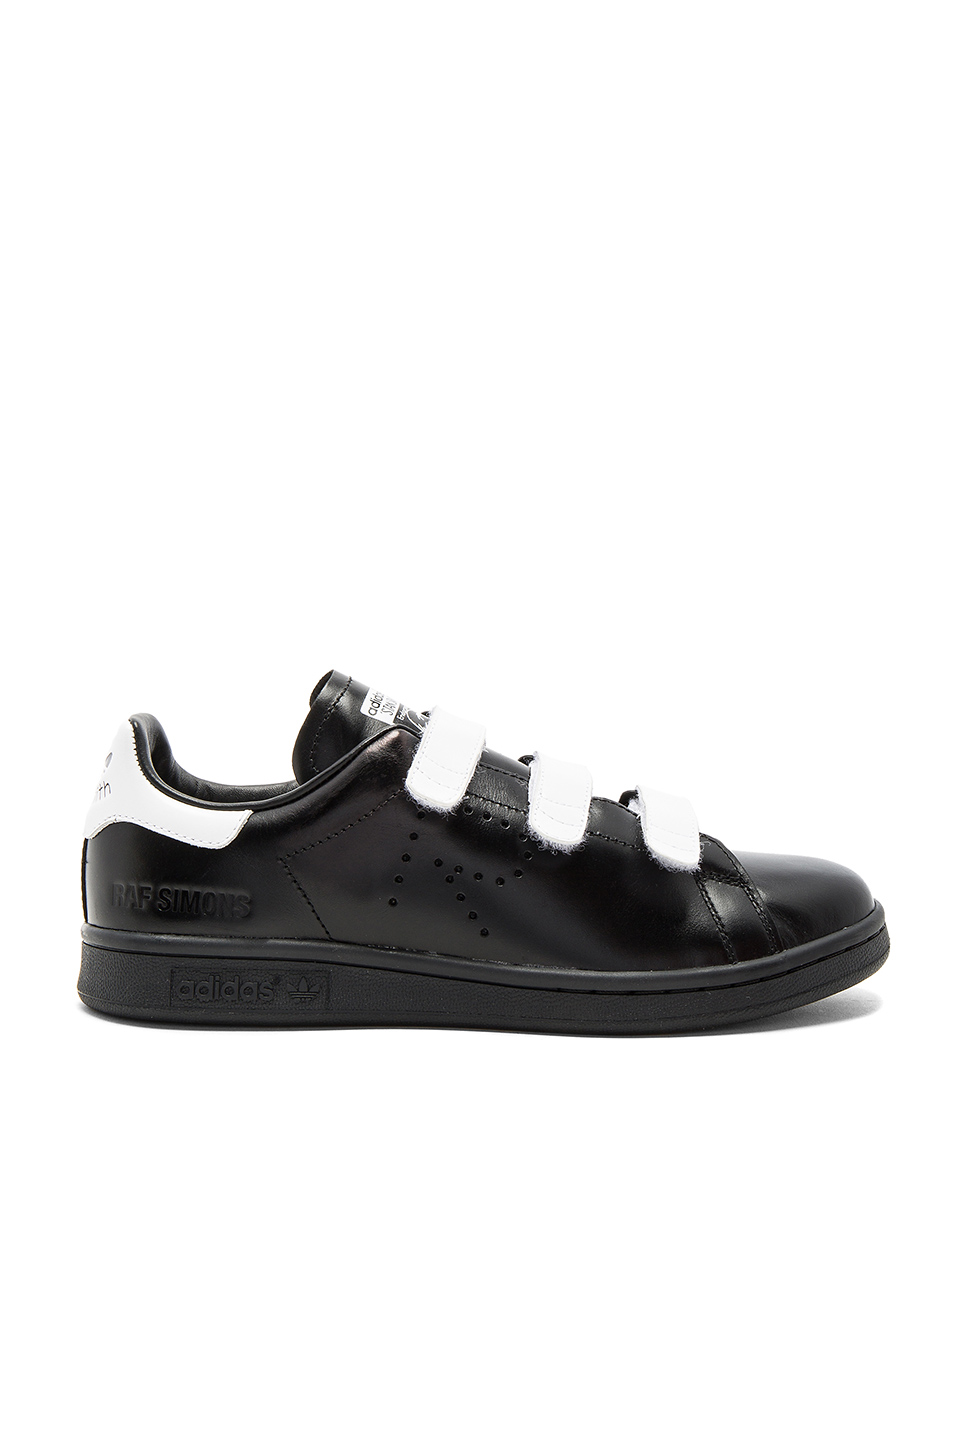 adidas by Raf Simons RS Stan Smith CF Sneaker in White & Black